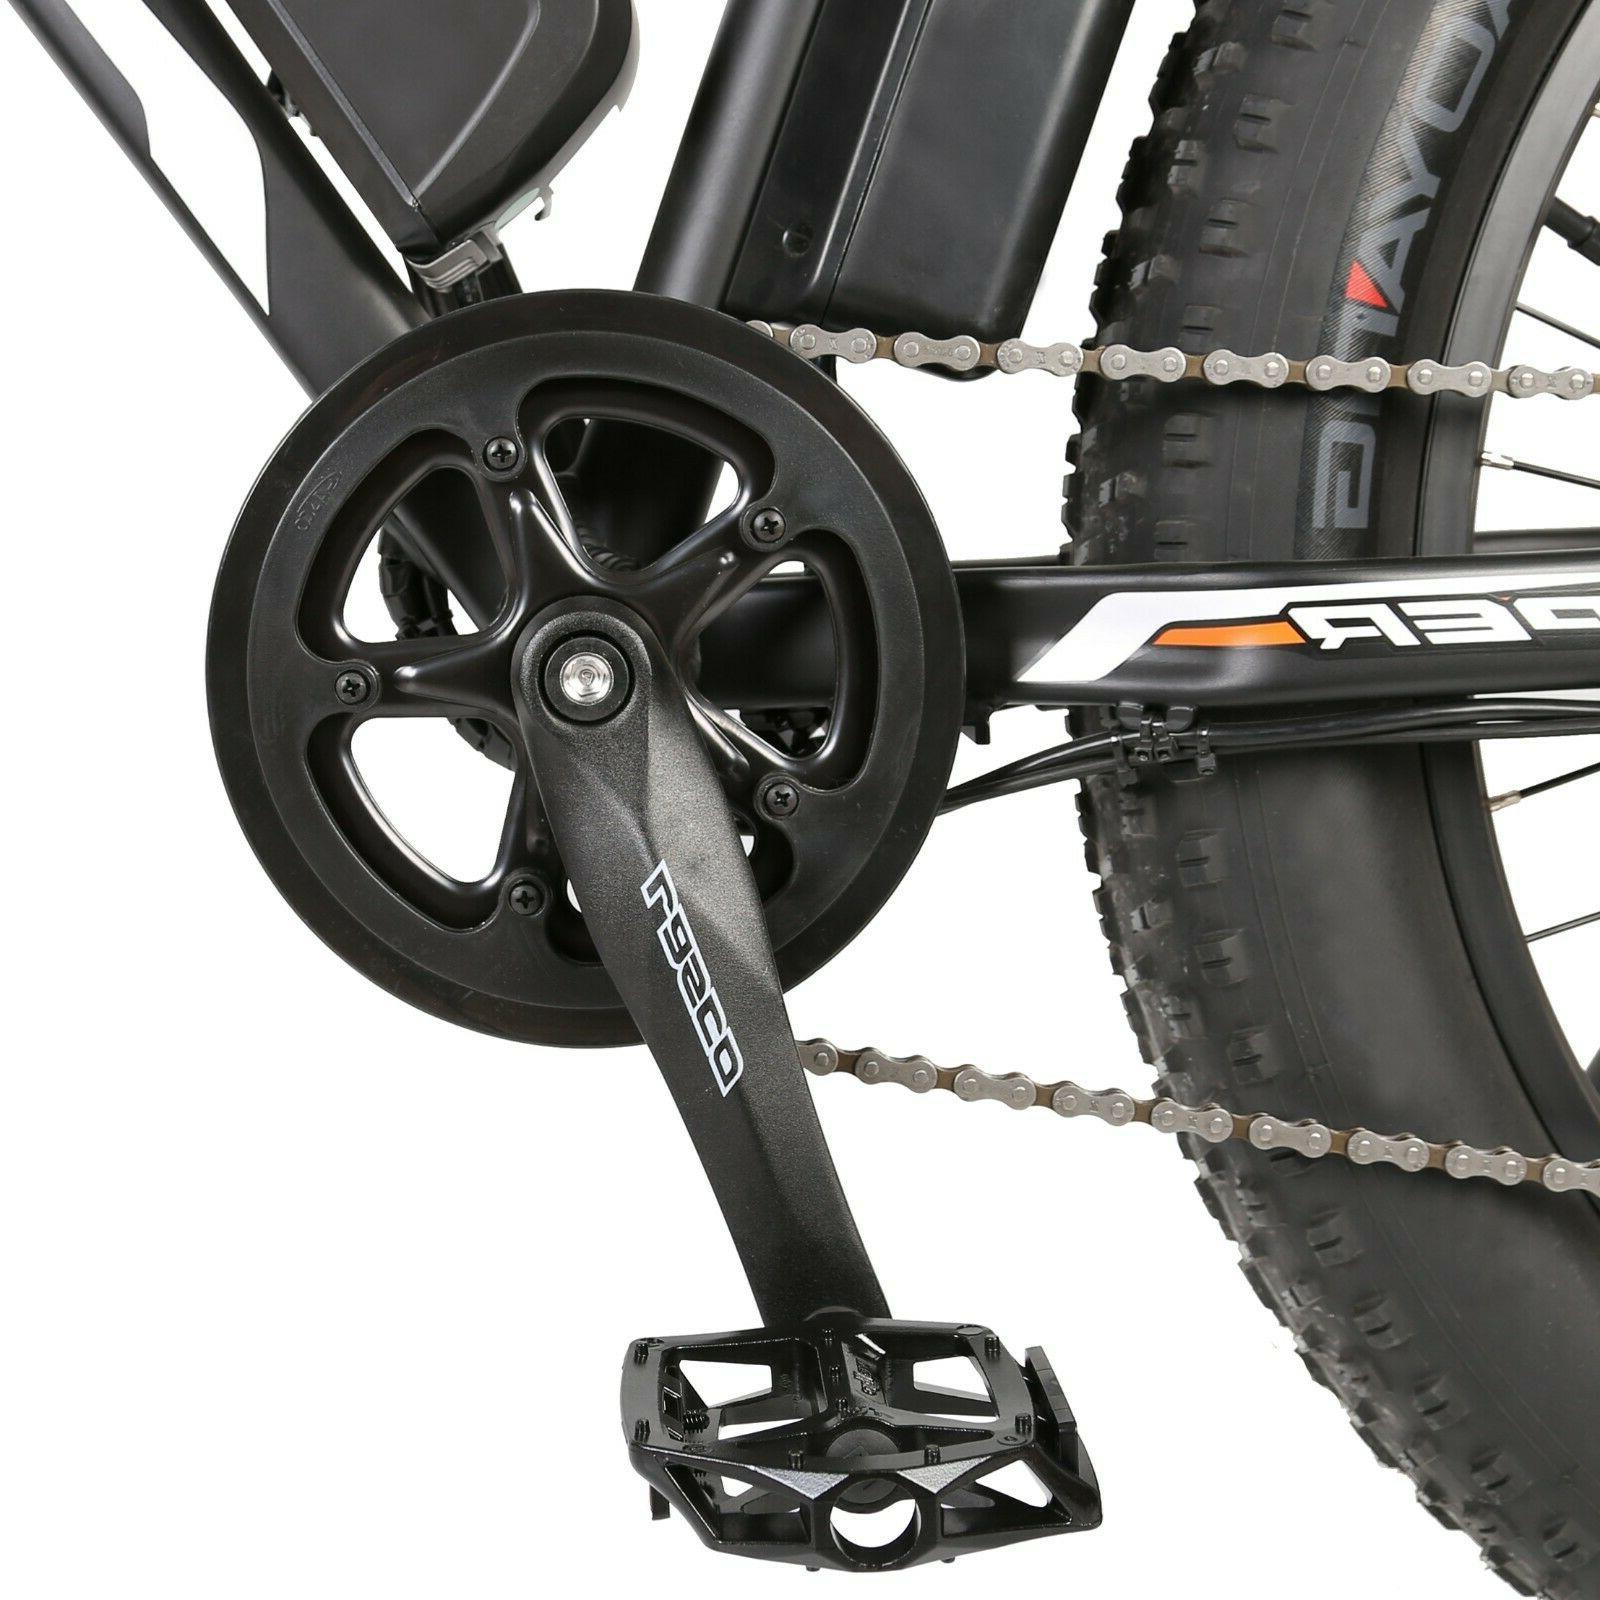 ECOTRIC 36V500W Mountain City eBike Pedal 7 Speed